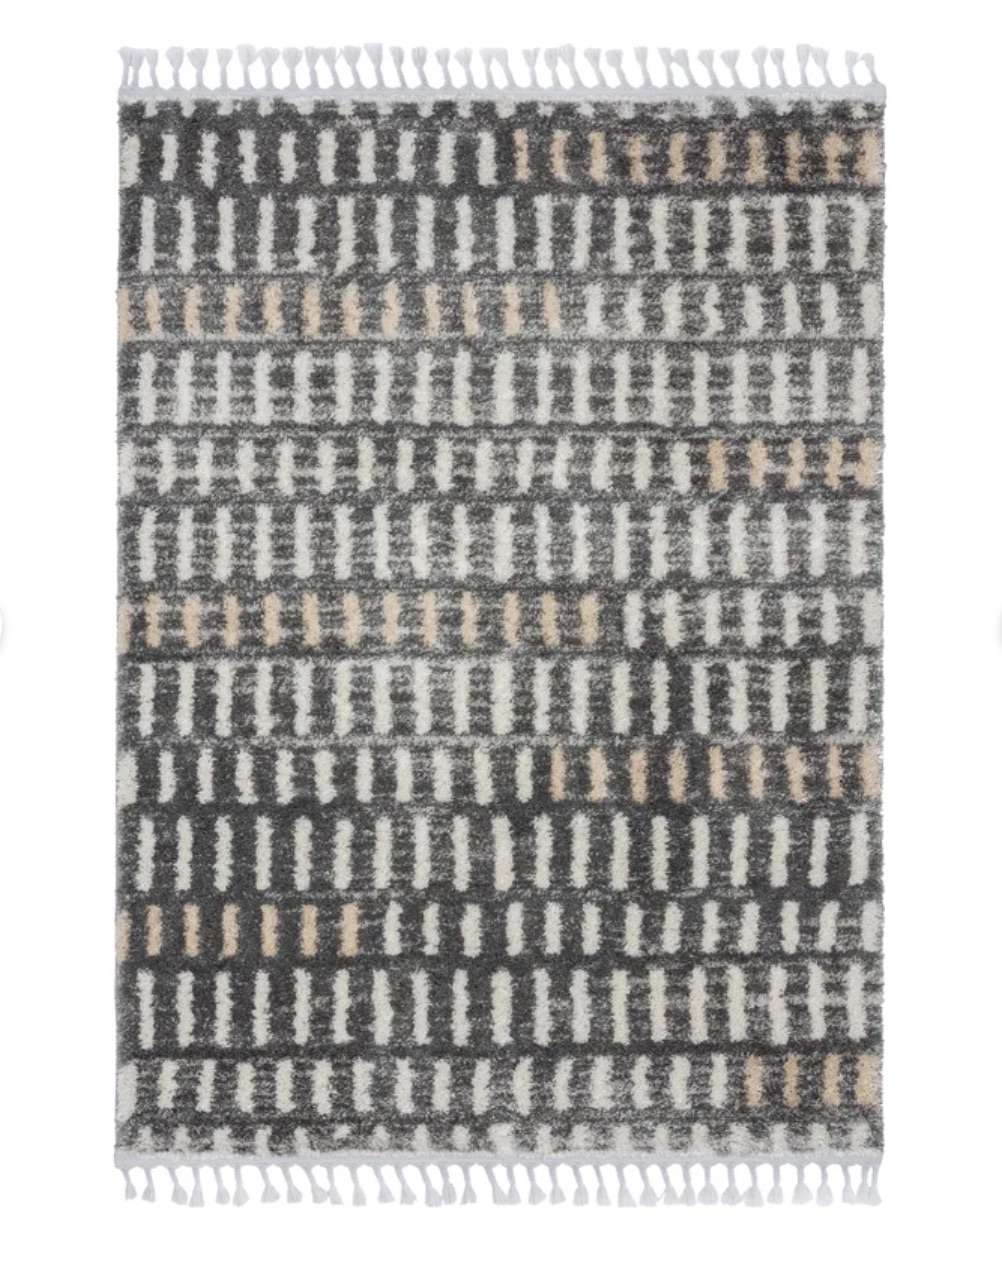 The Spruce Marcella Louise Area Rug